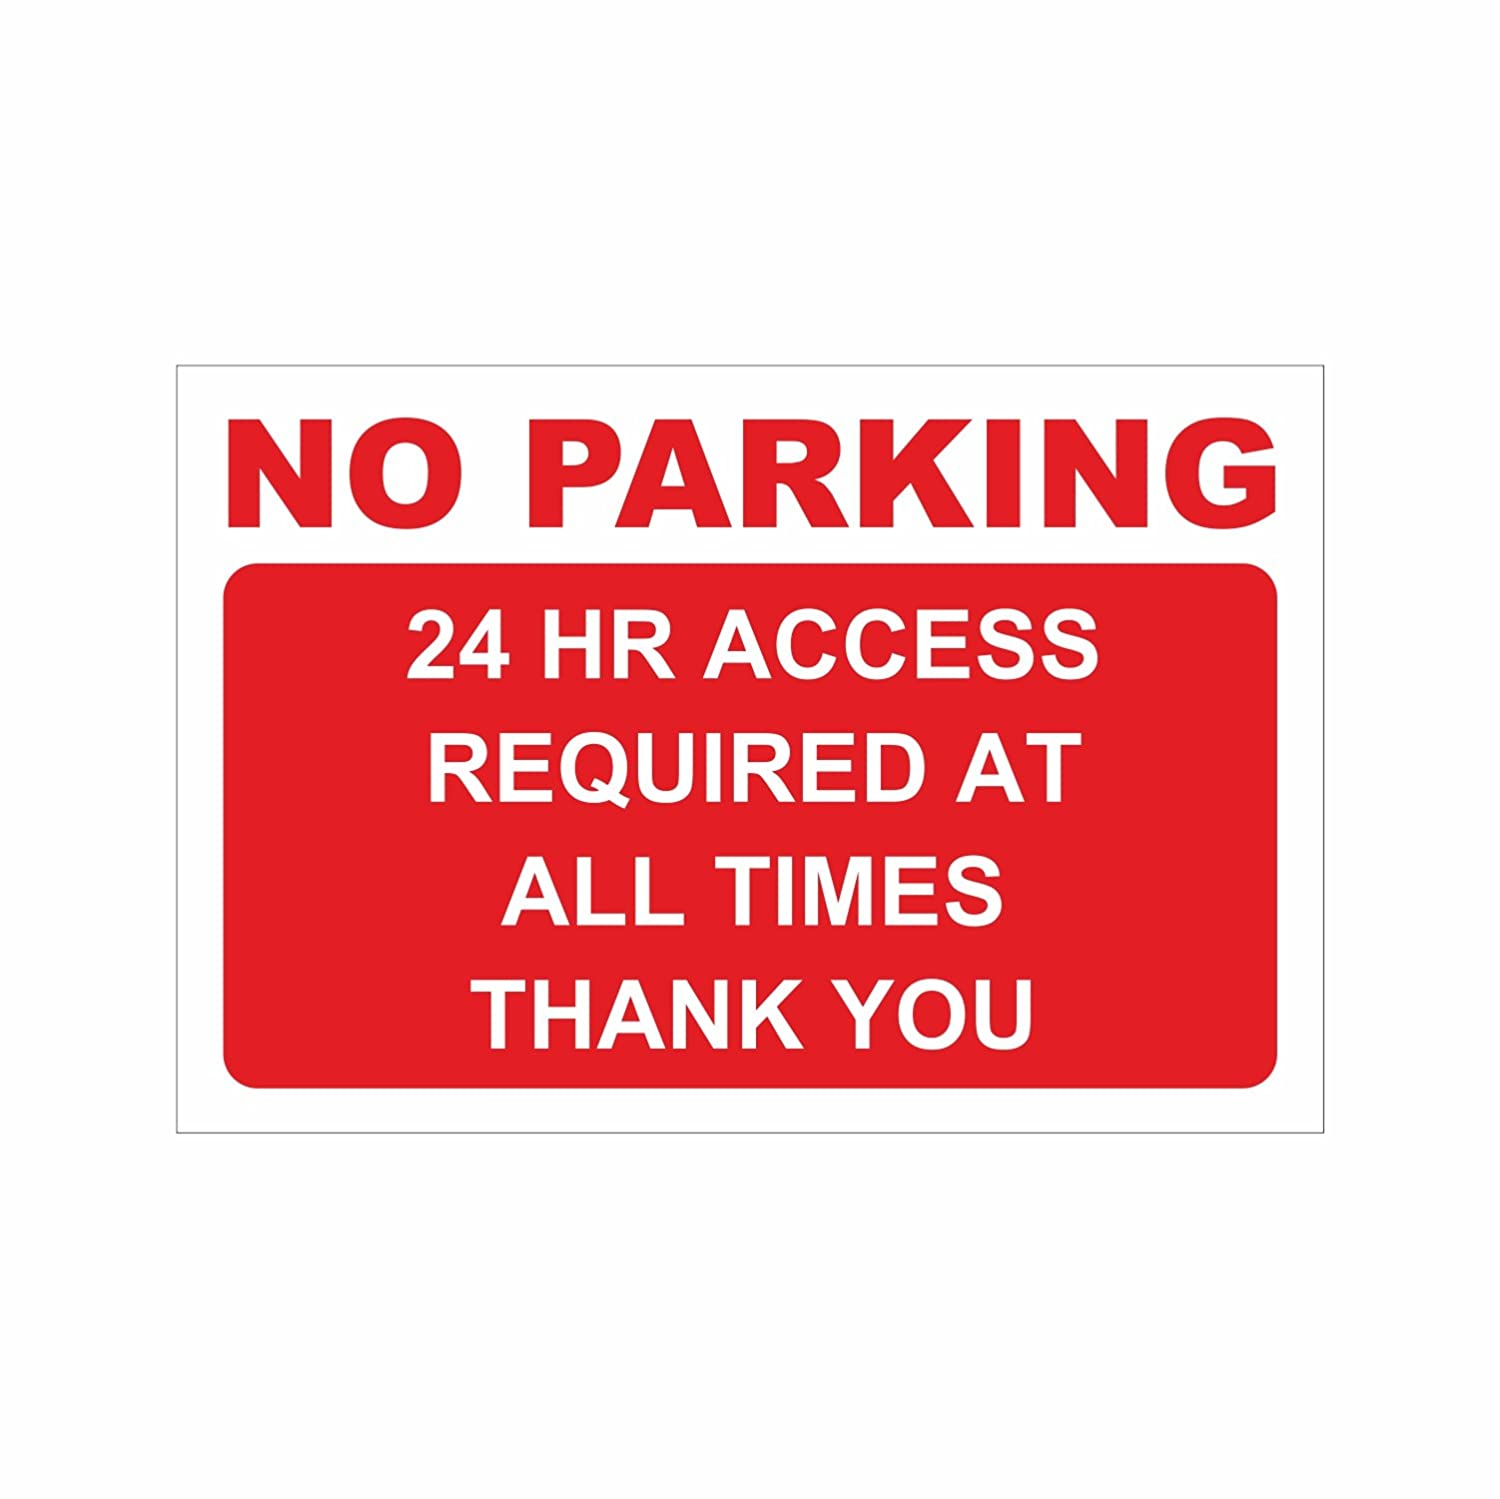 NO PARKING Sign - Large Self-Adhesive Sticker - Access Required - Private Property, Parking, Clamping, Disabled, Driveway, Do not block (24 H Access Required) Vacom Advertising Ltd